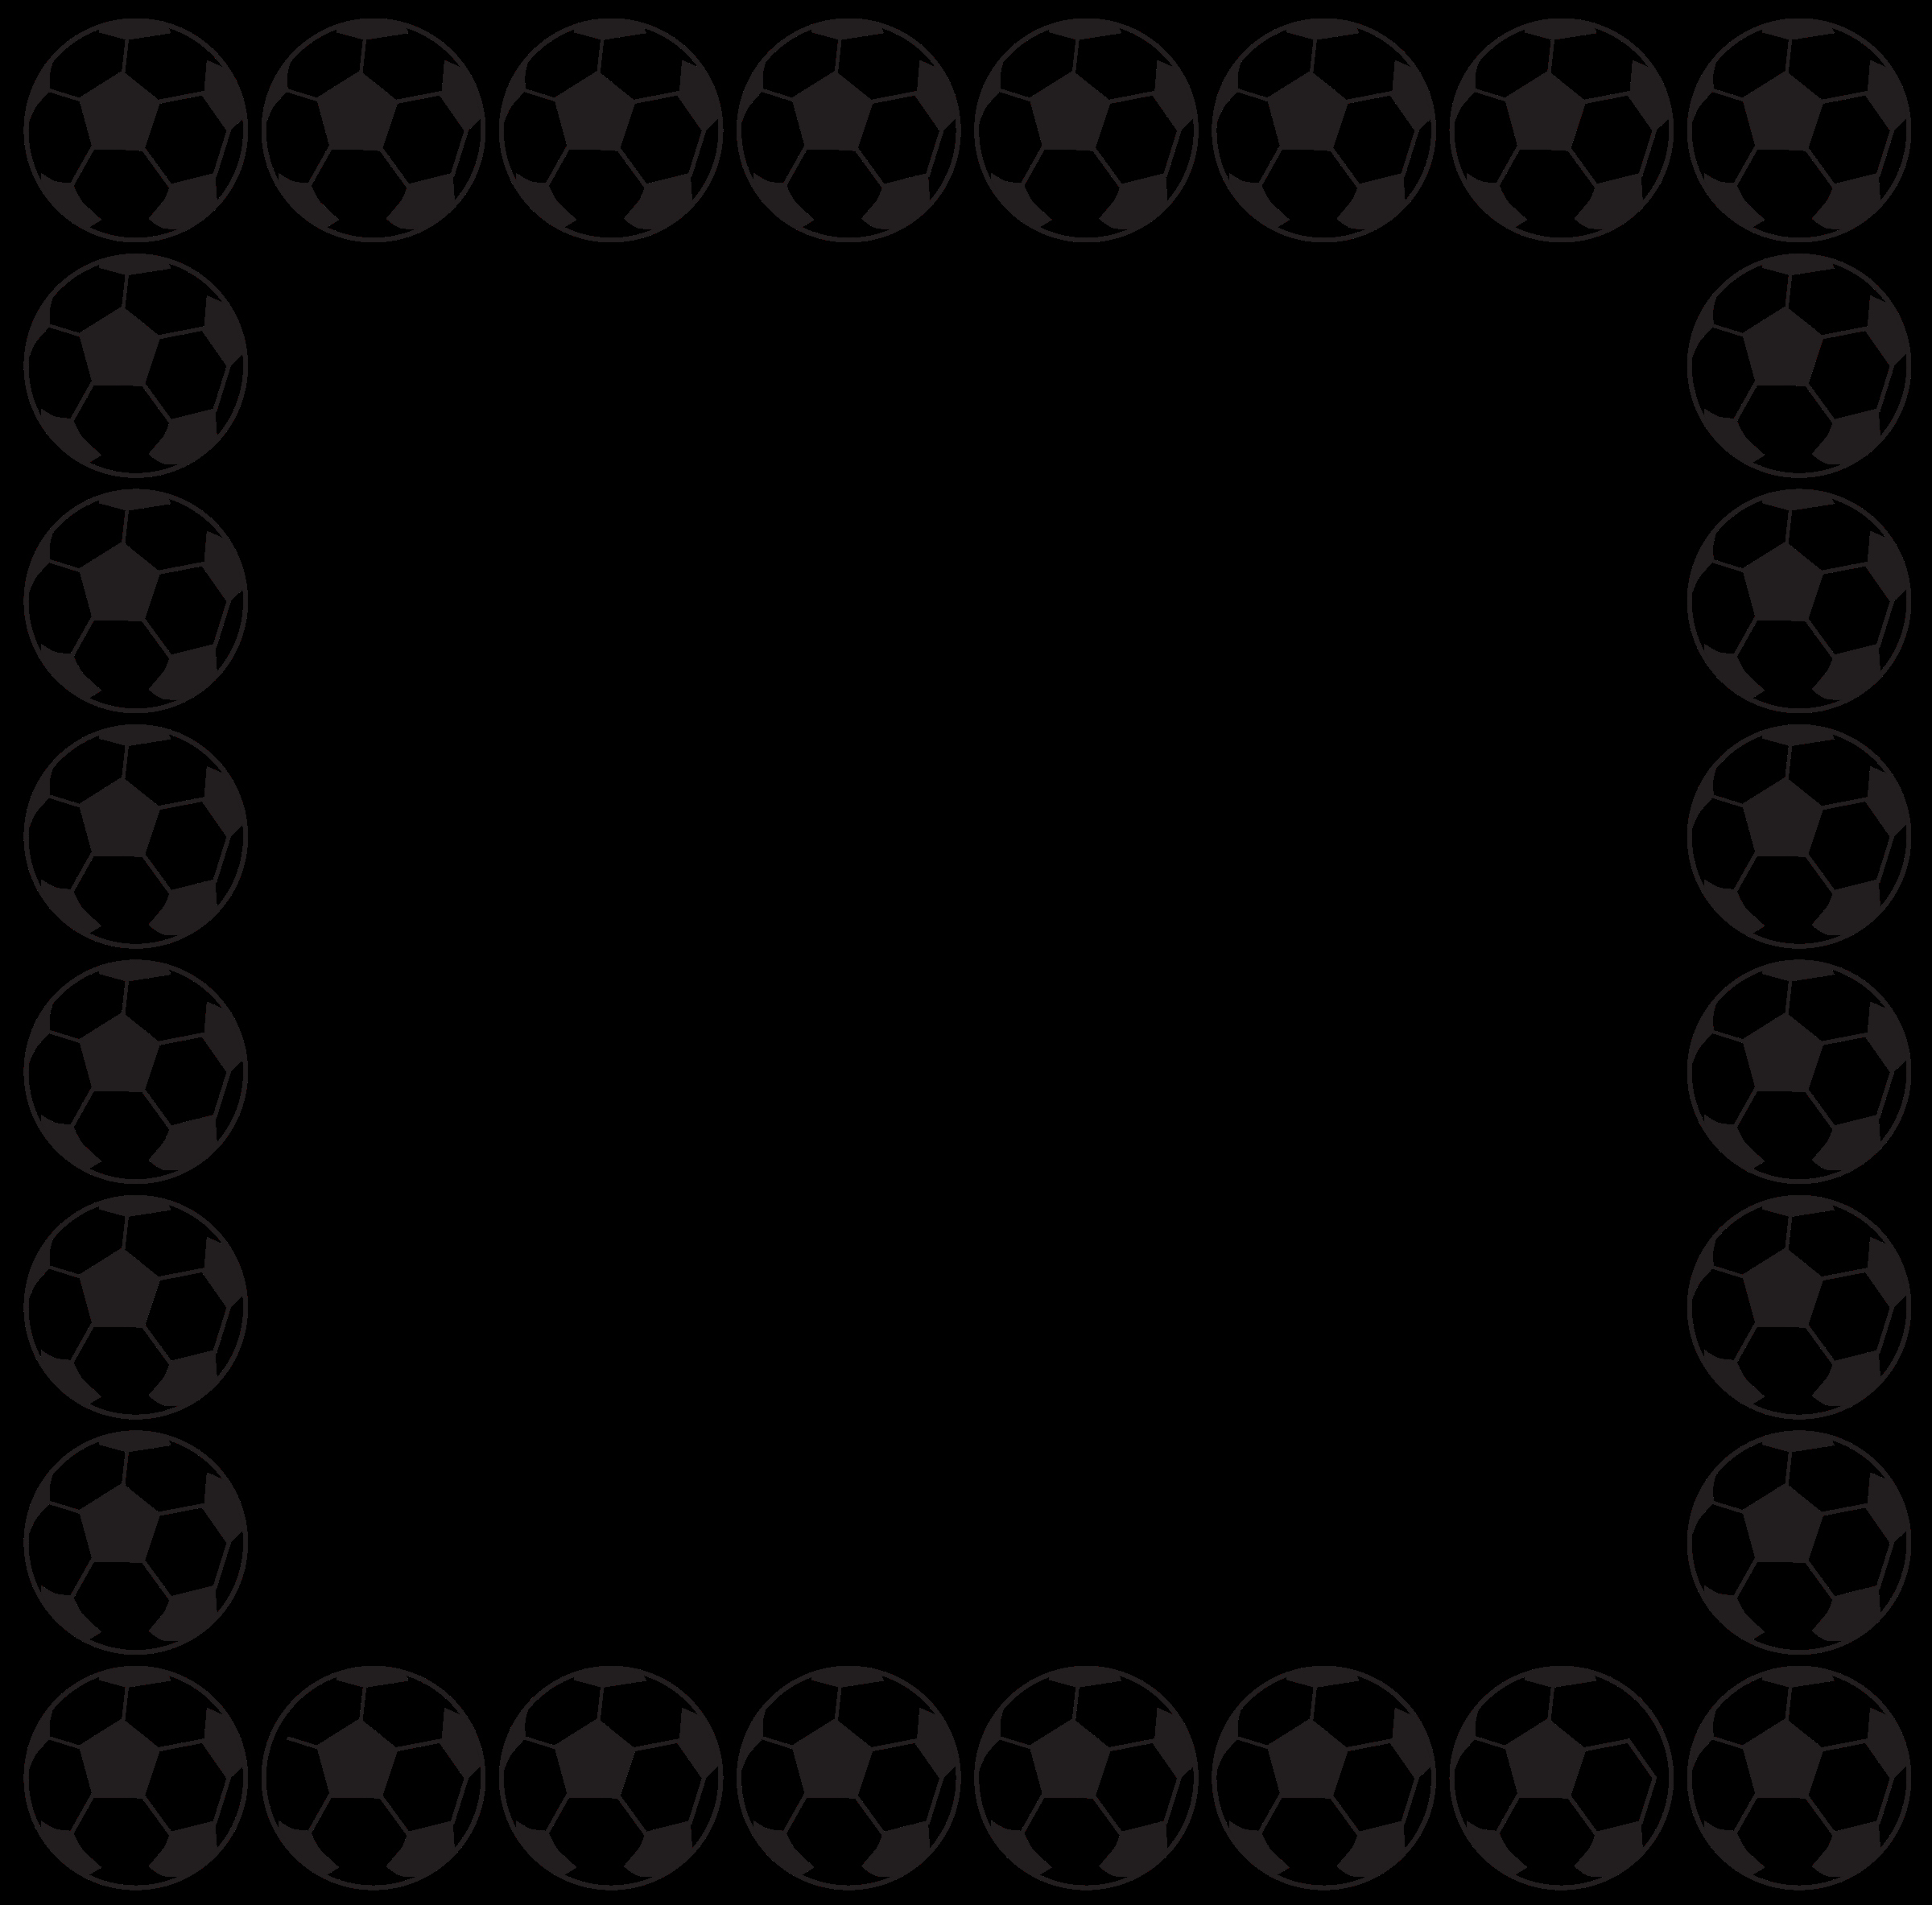 Free Football Border Template Best Of Free Football Borders Download Free Clip Art Free Clip